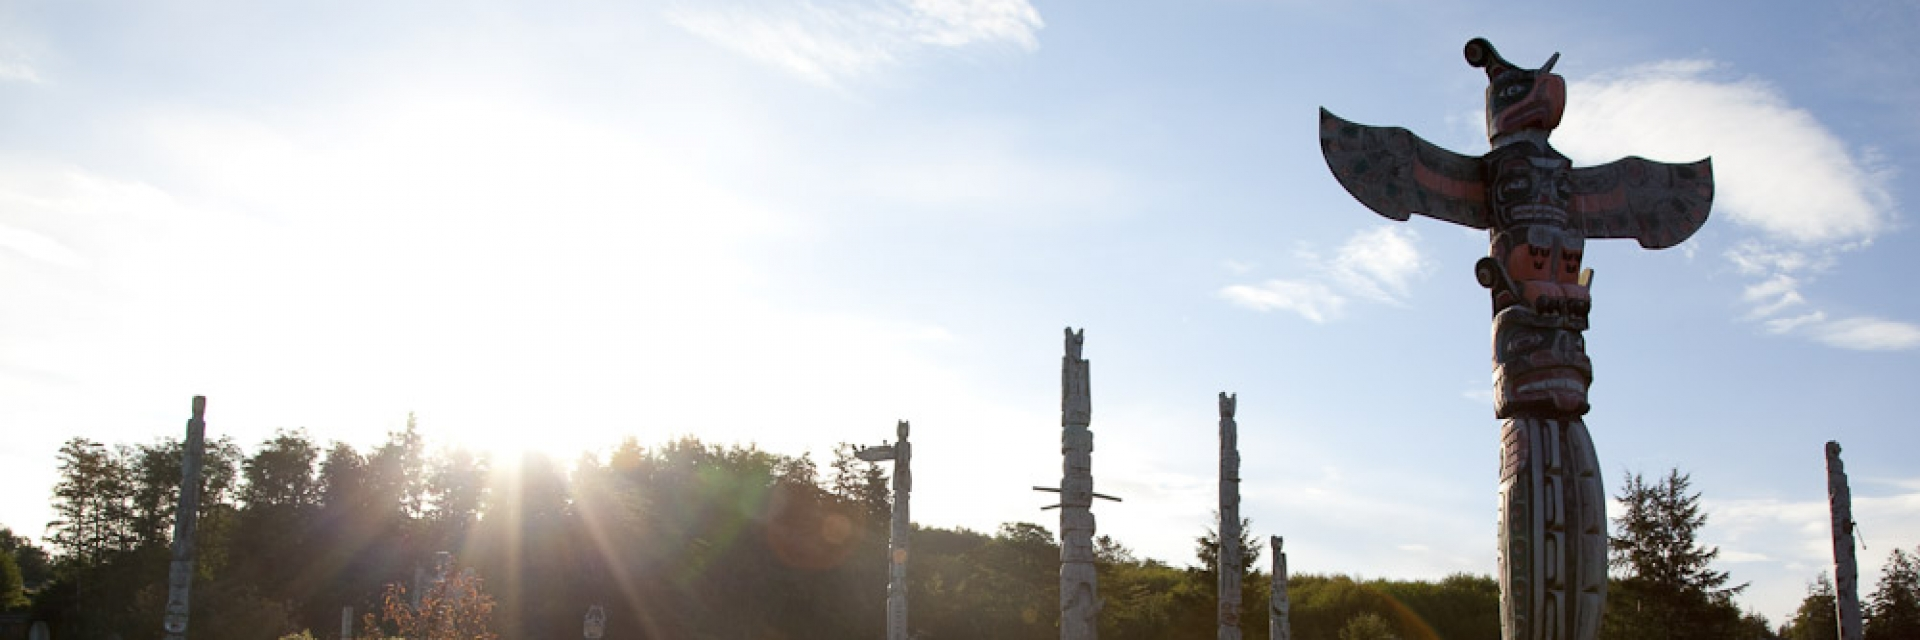 A group of totem poles stand in a grassy field while the sun shines in the background